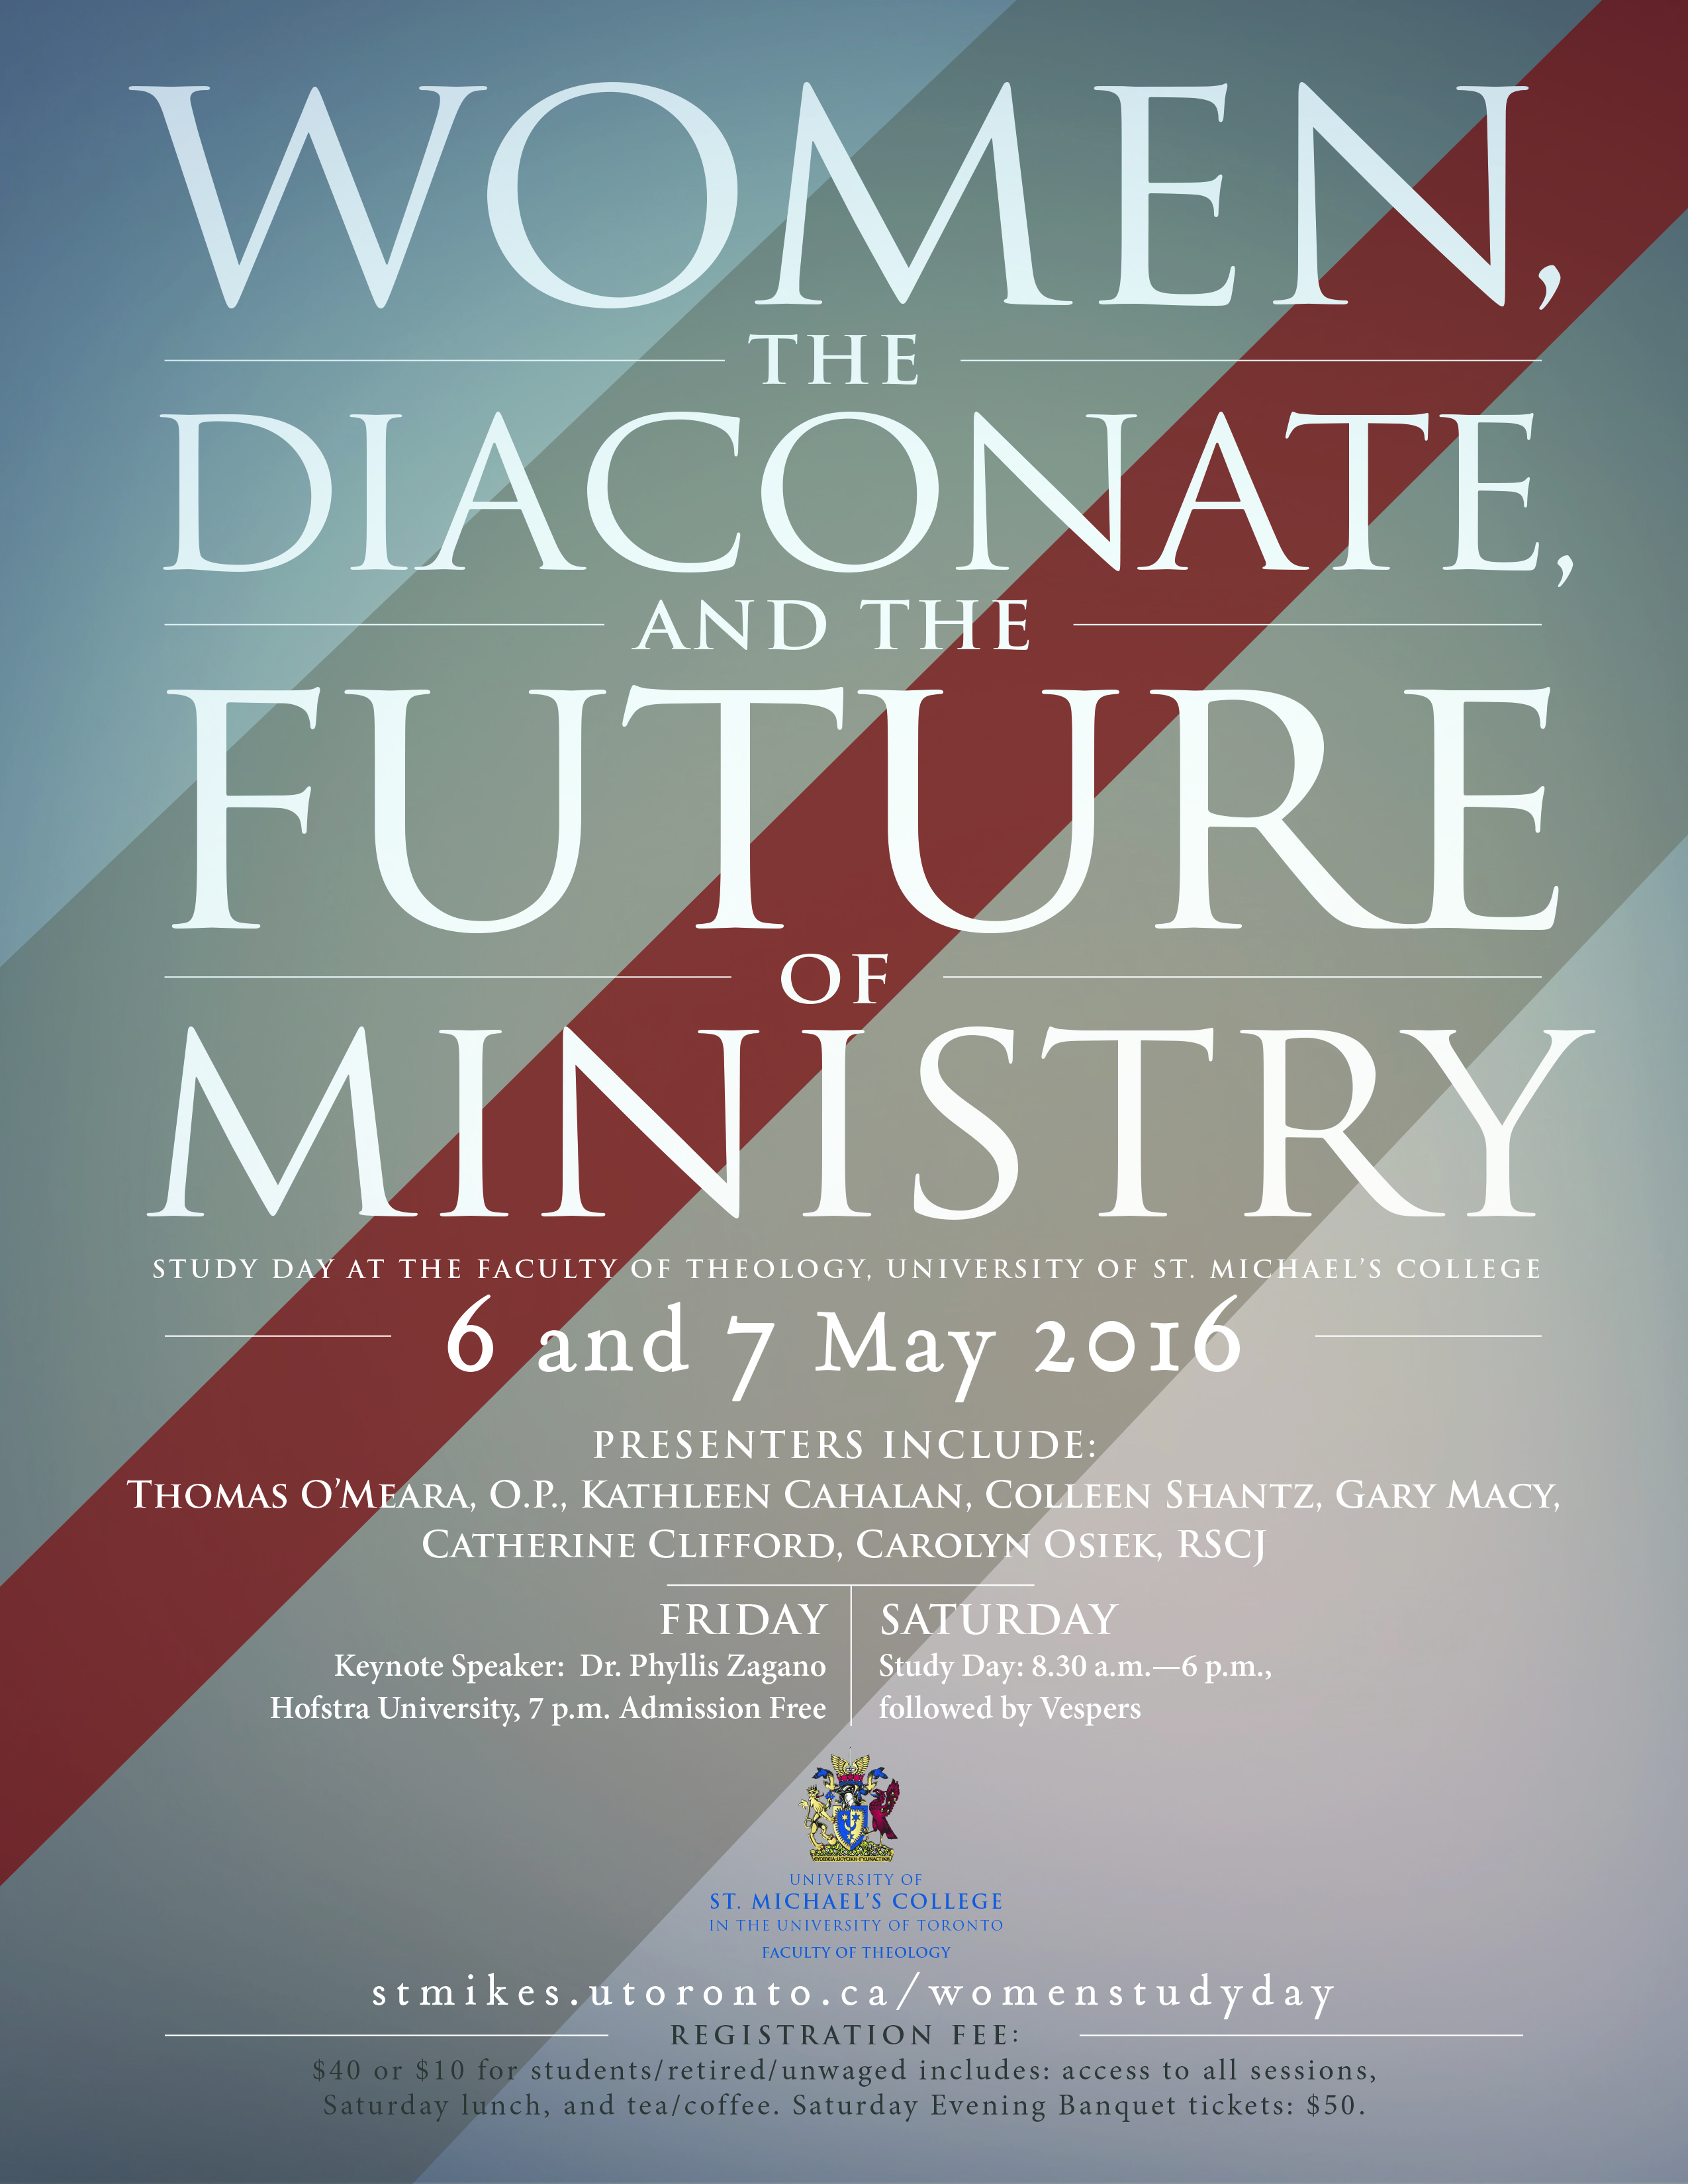 Women, The Diaconate, and the Future of Ministry Event